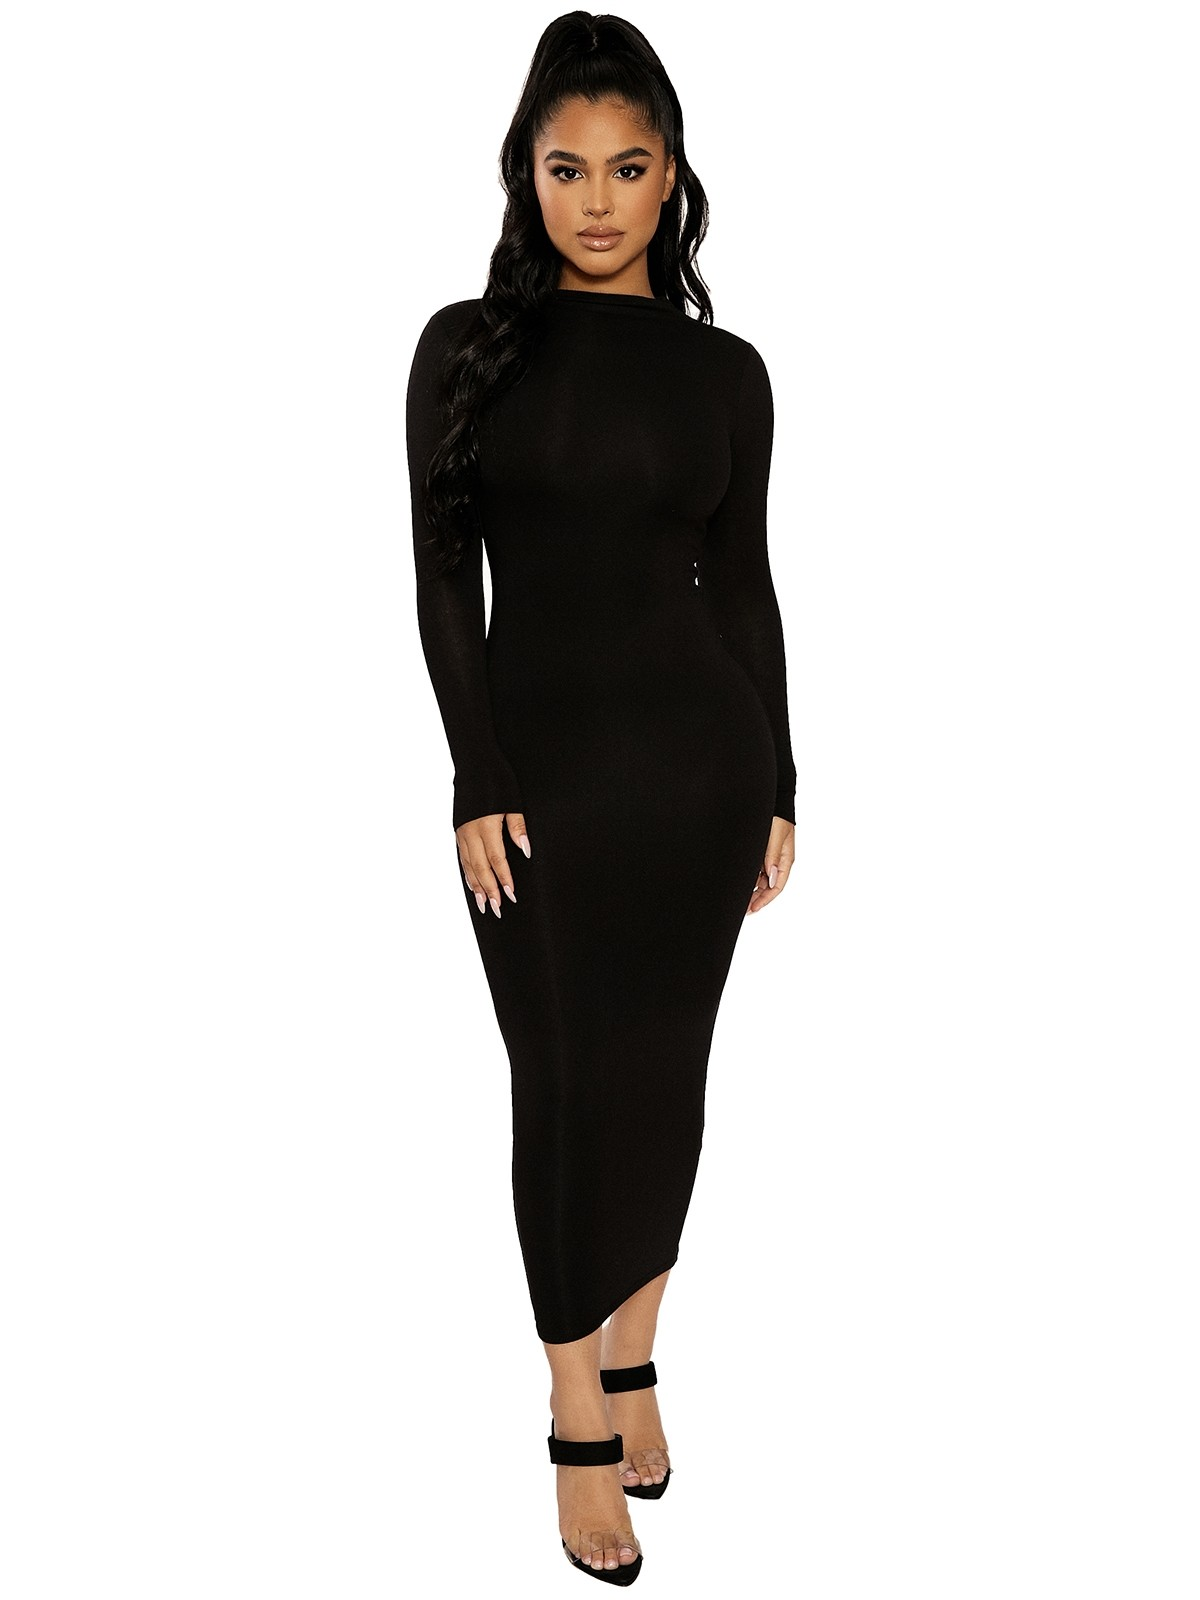 The NW Maxi by Naked Wardrobe, available on nakedwardrobe.com for $62 Kylie Jenner Dress SIMILAR PRODUCT